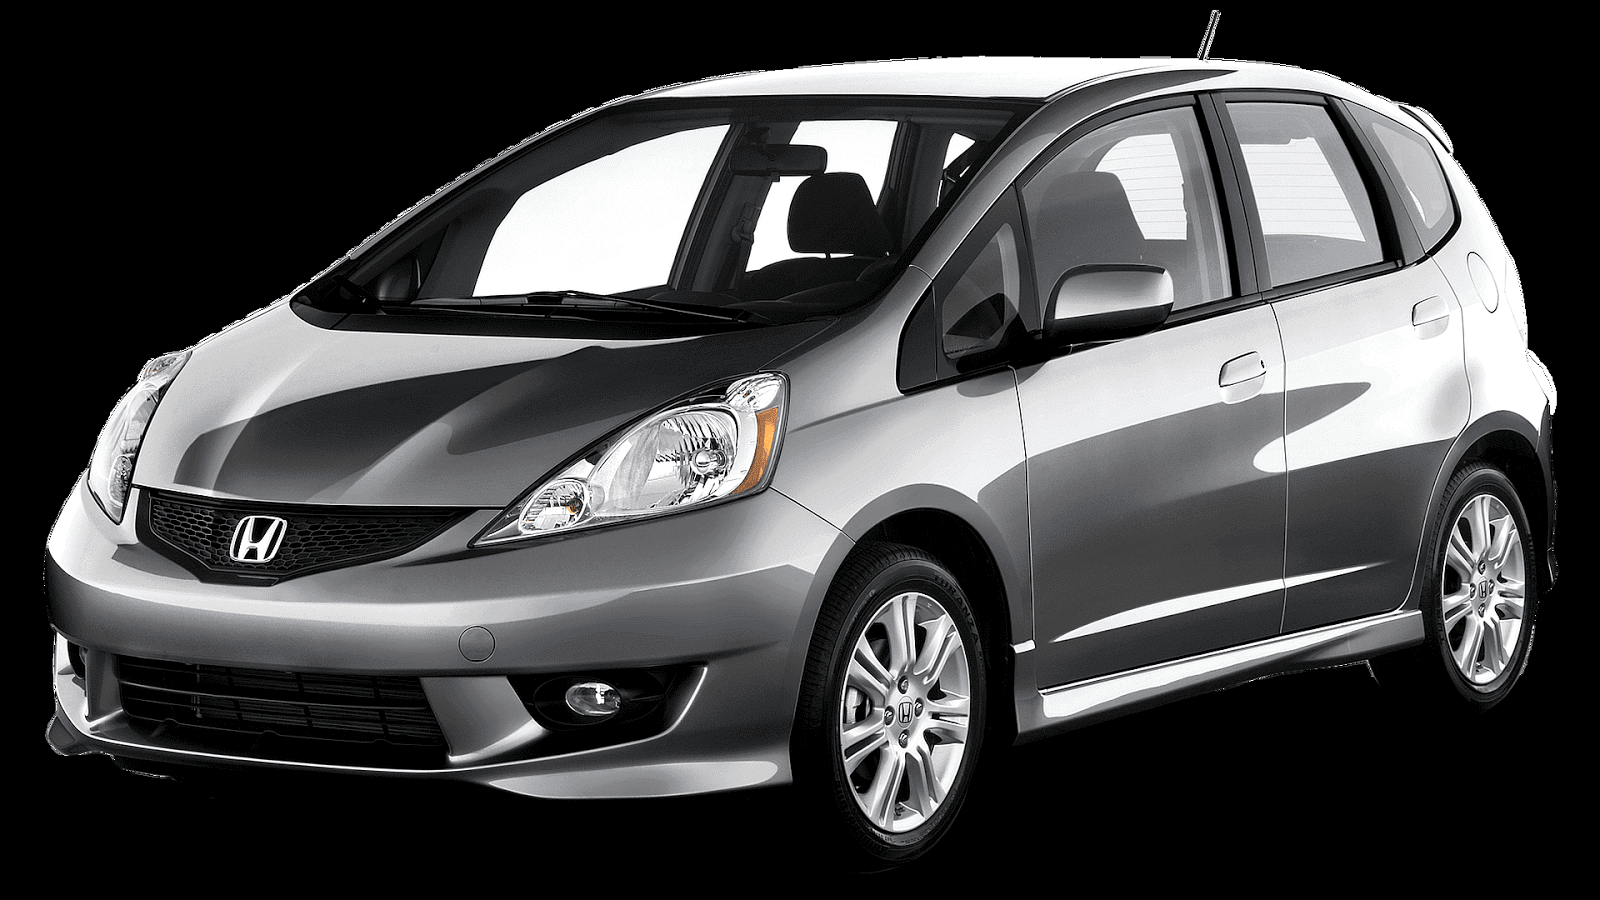 2010 Honda Fit Price - Fit Choices